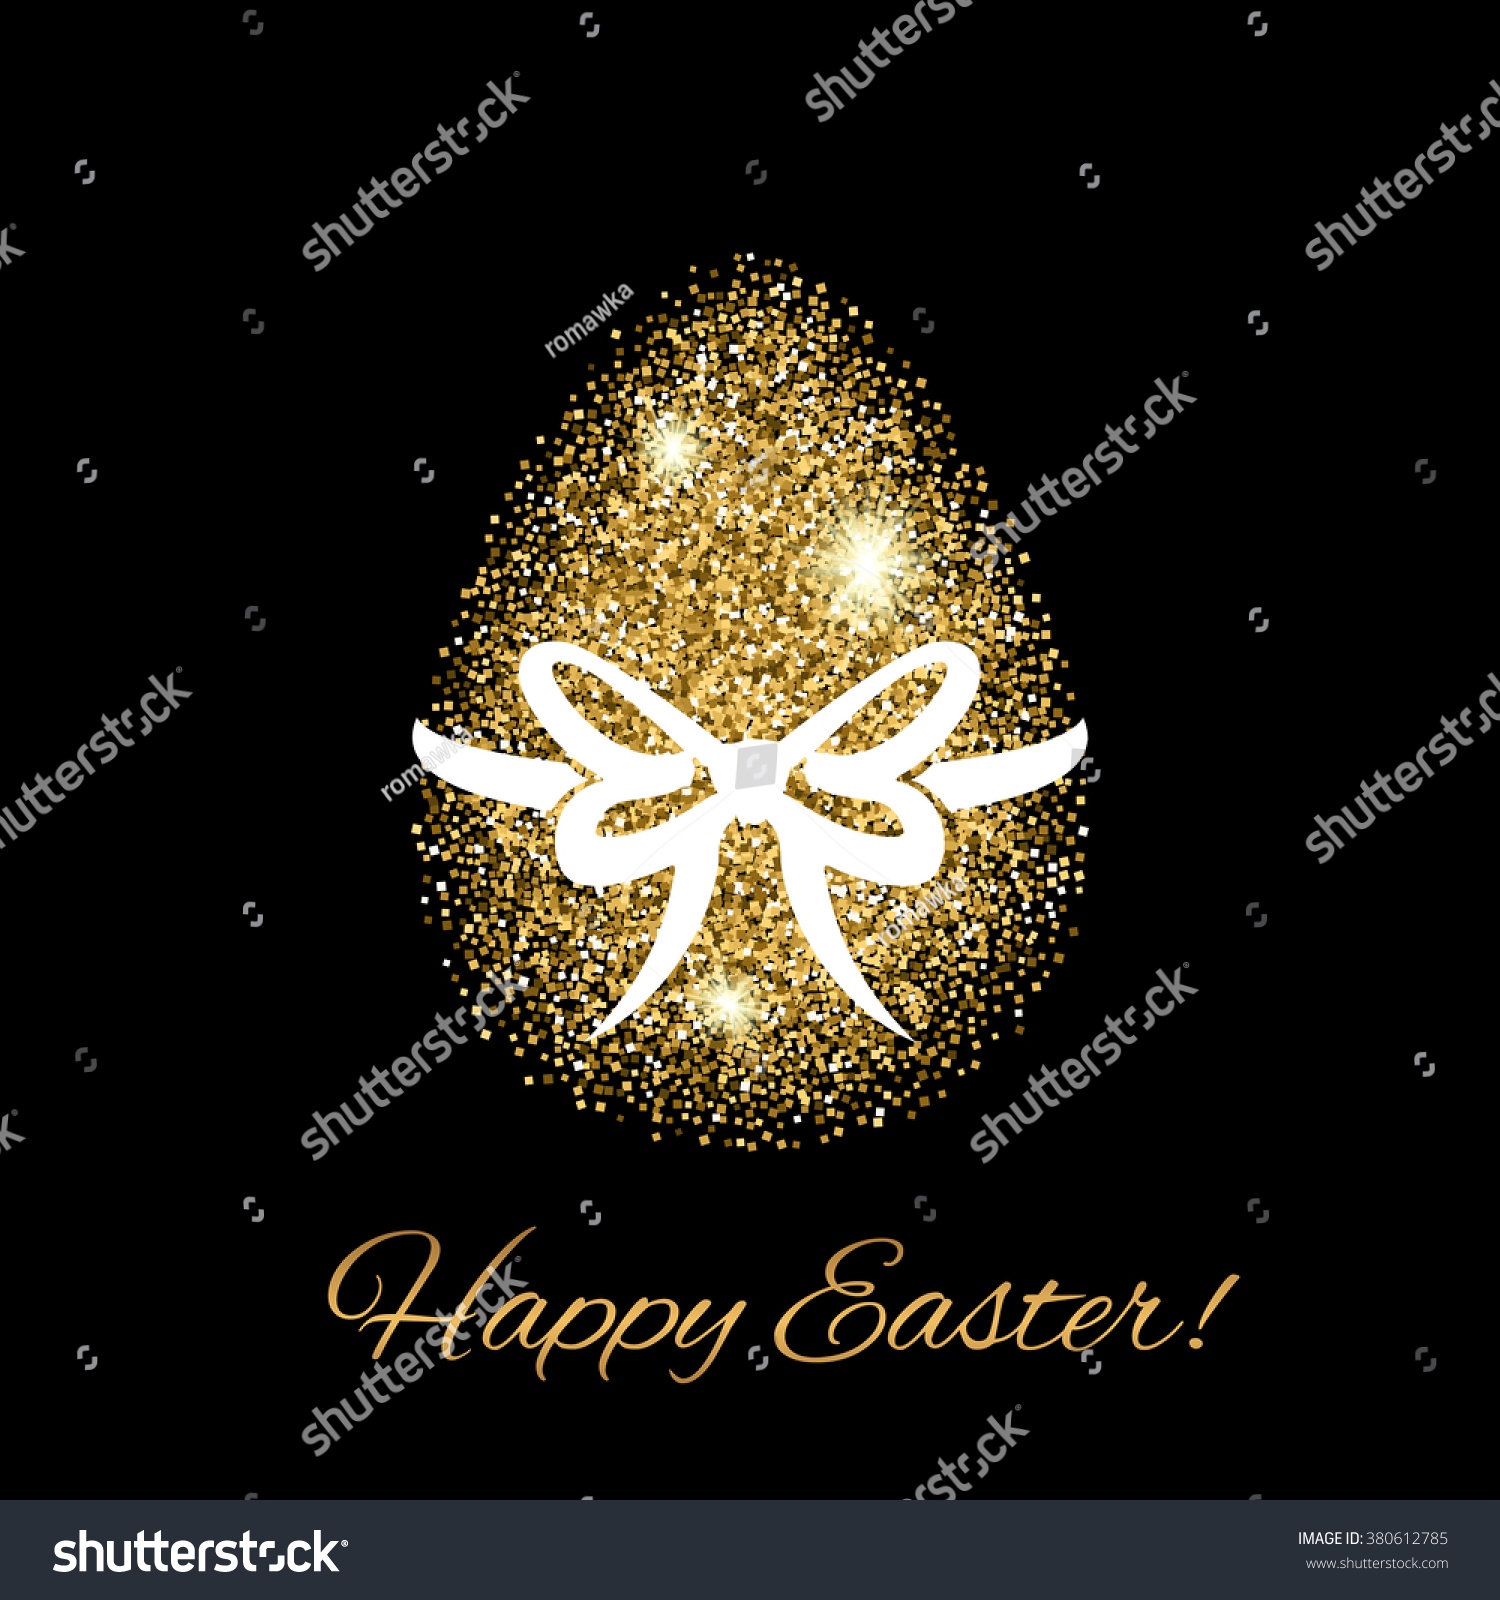 Easter greeting card with gold glitter egg. Easter icon.